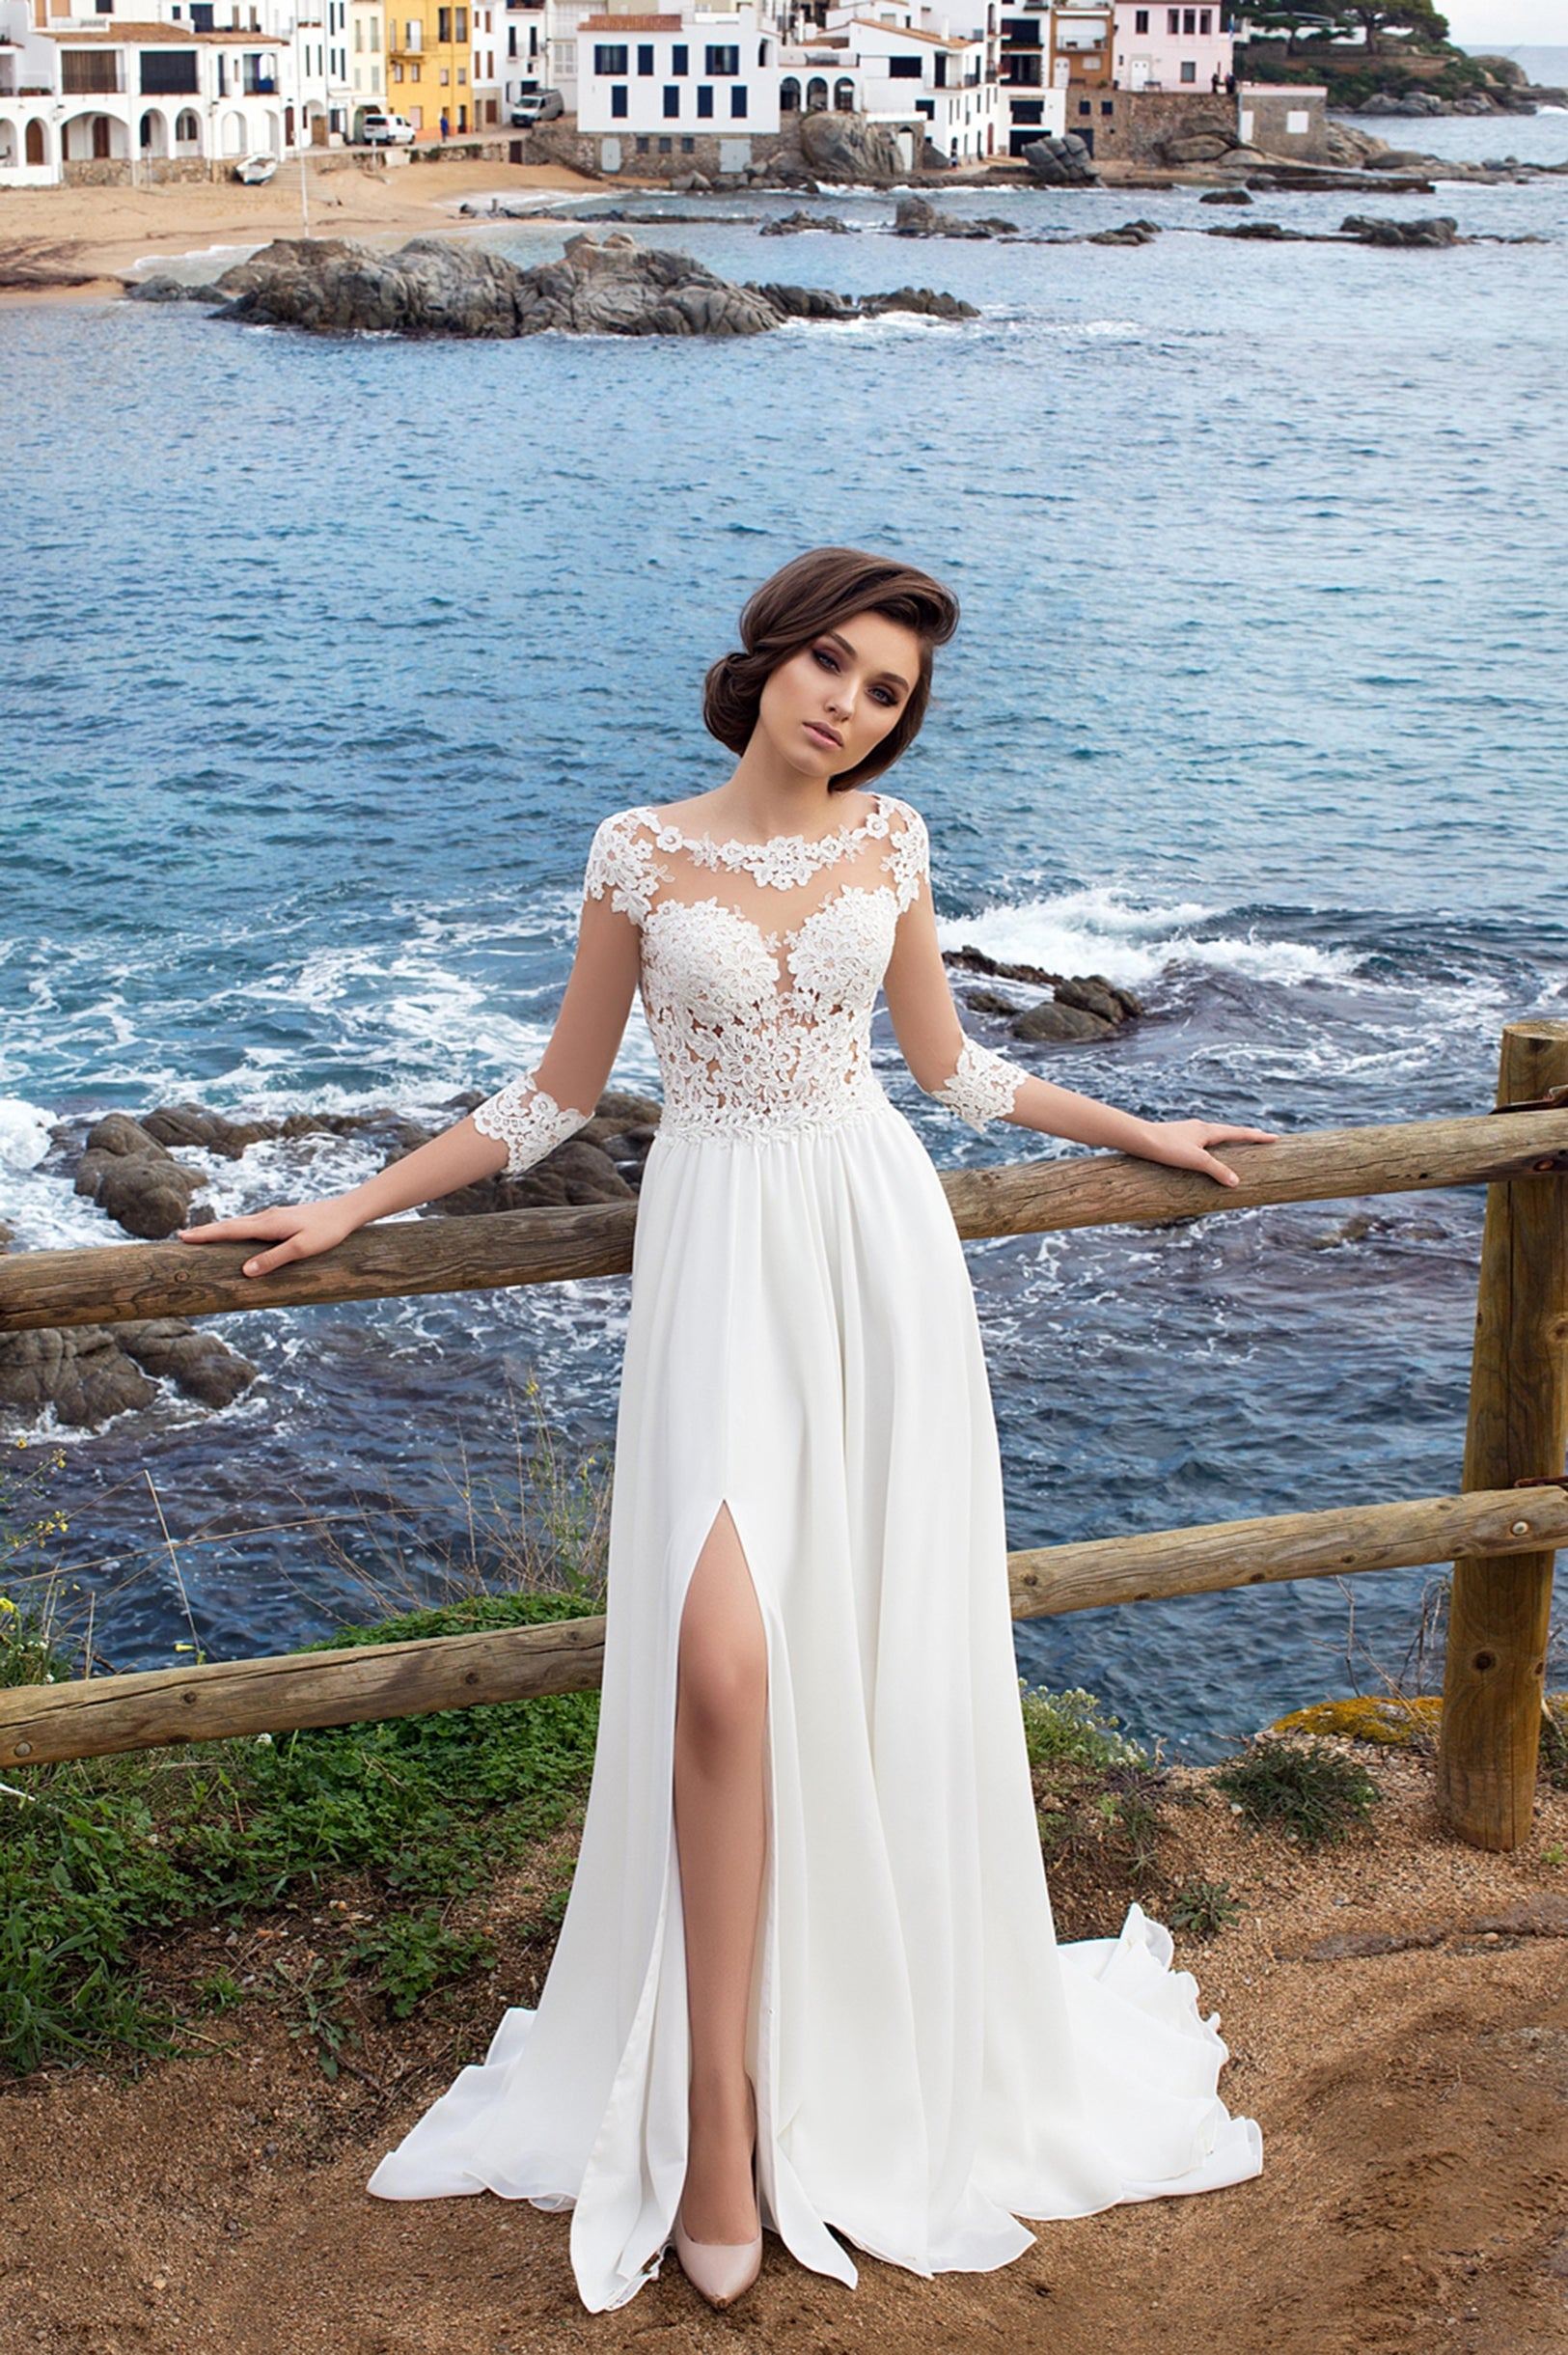 Bohemian Wedding Dress   Boho Wedding Gown  a9346263ea92